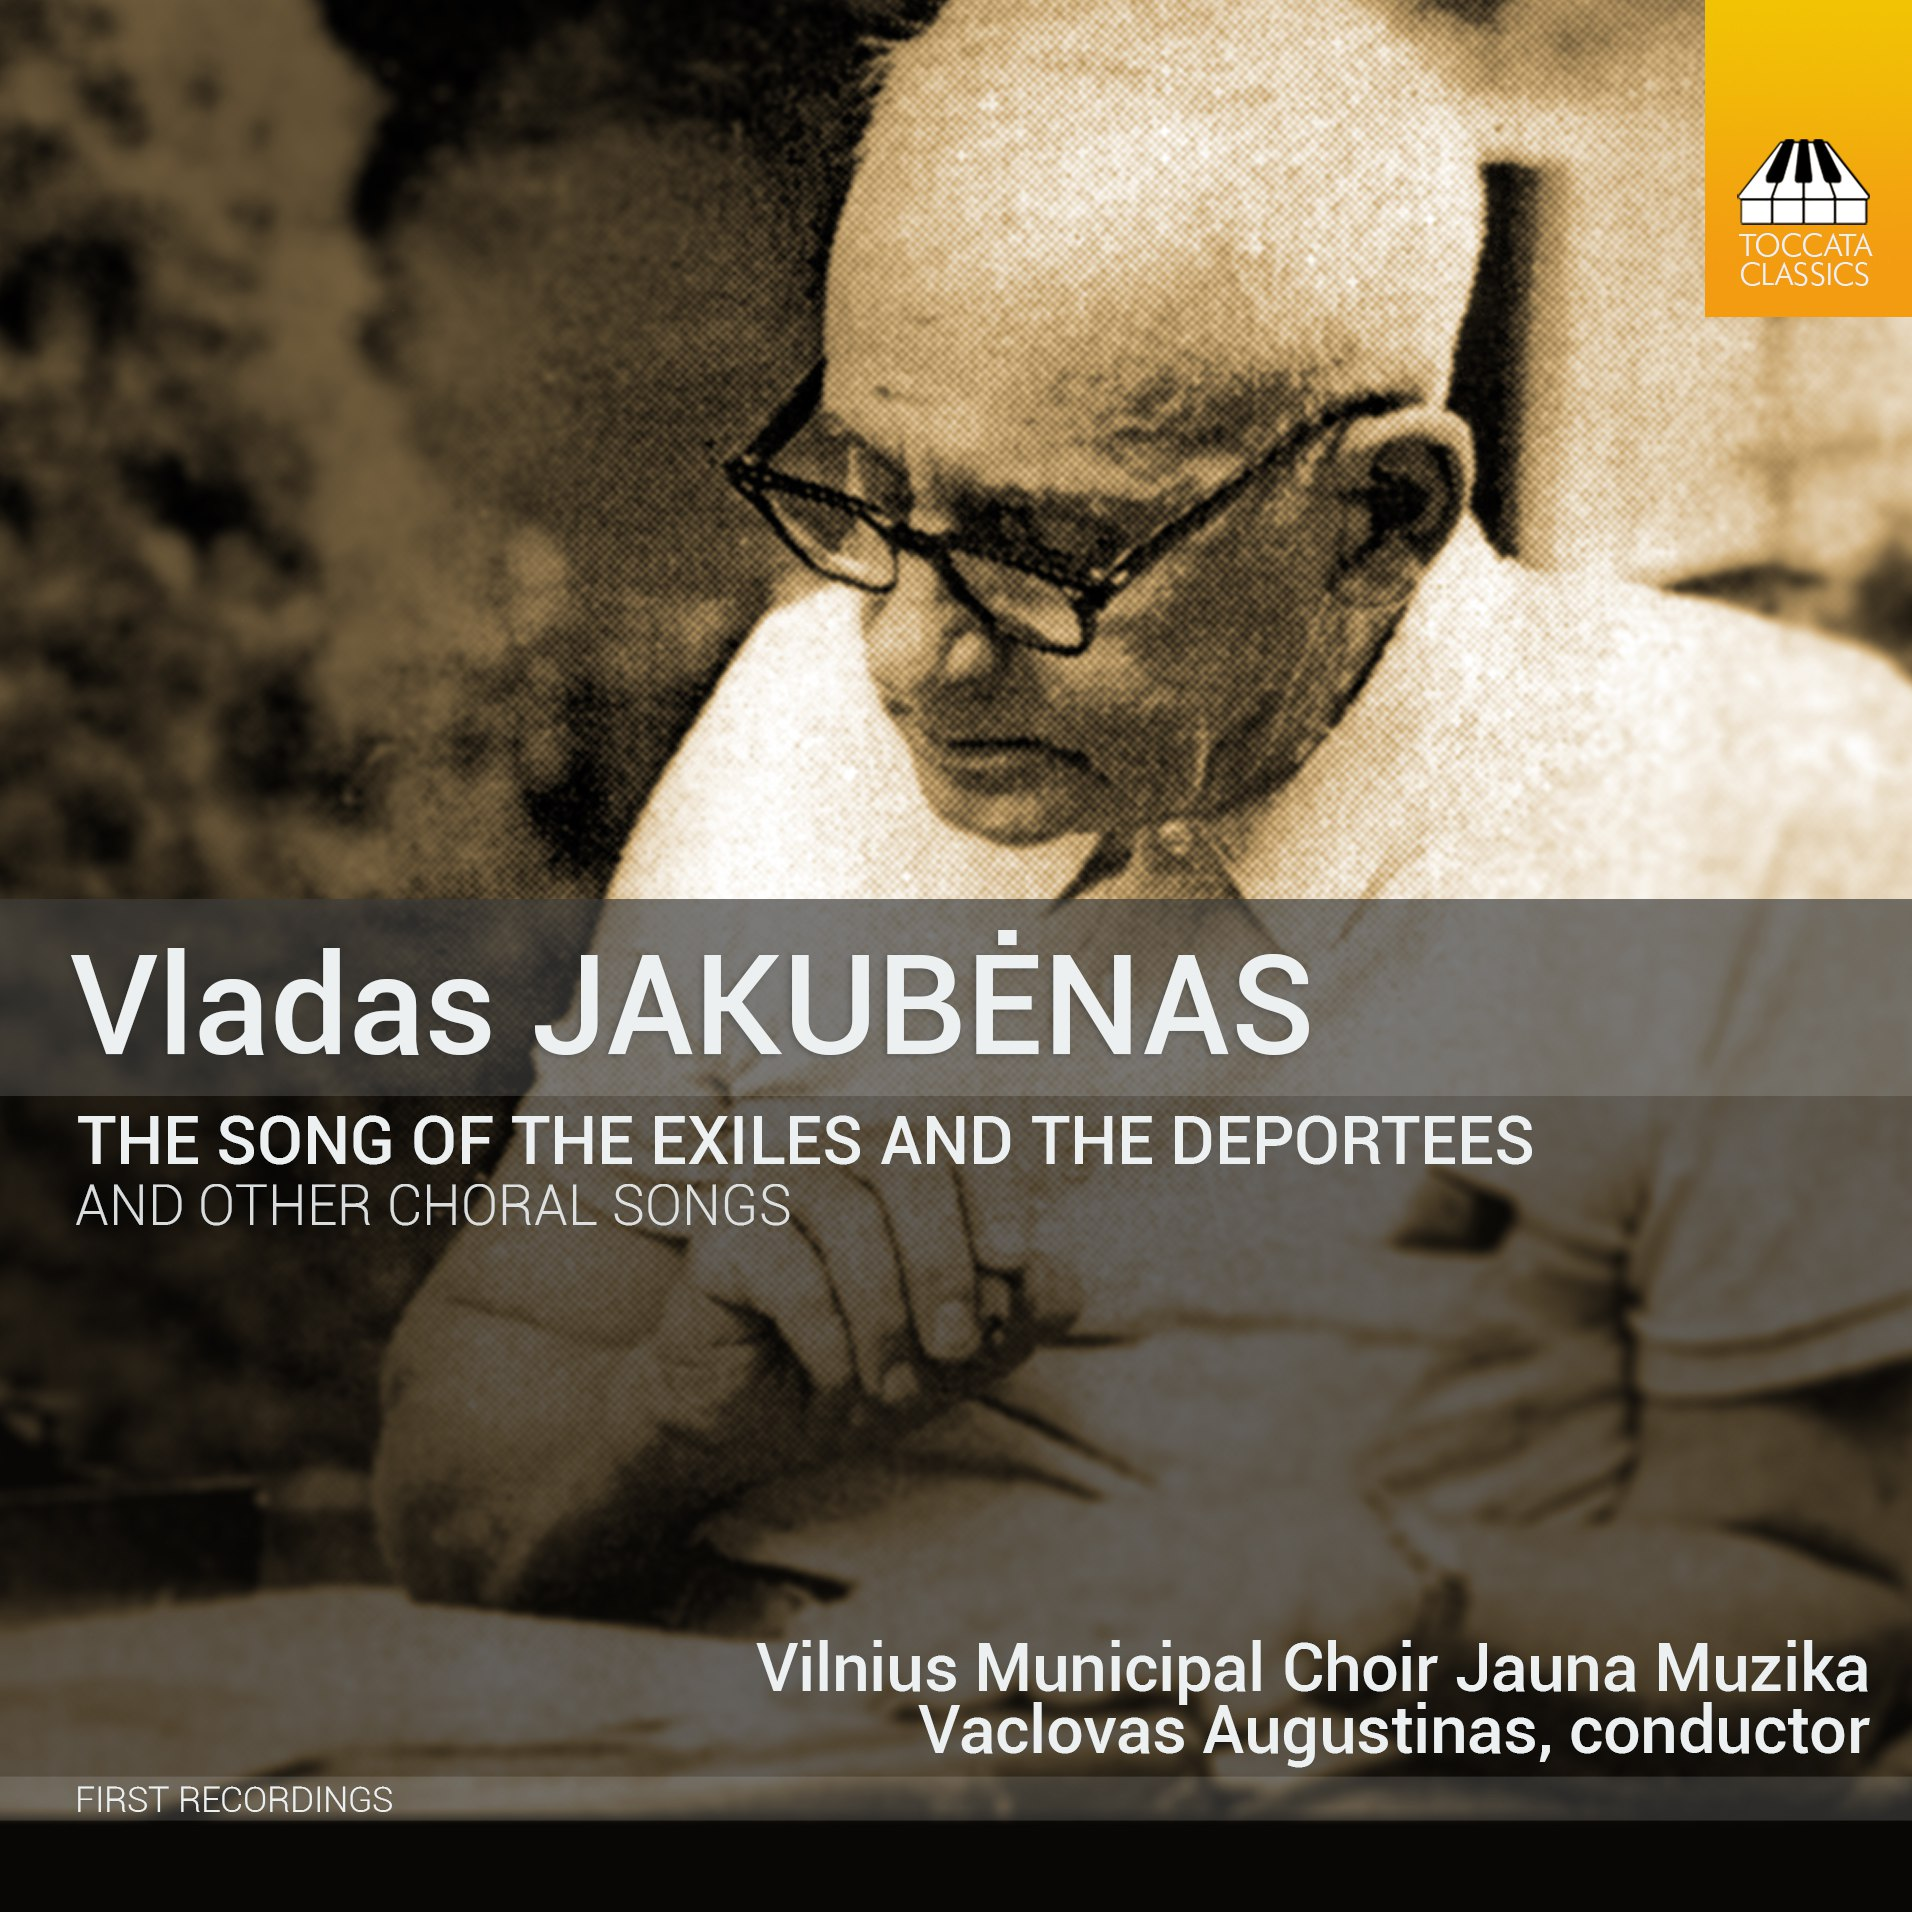 Vladas Jakubėnas: The Song of the Exiles and The Deportees